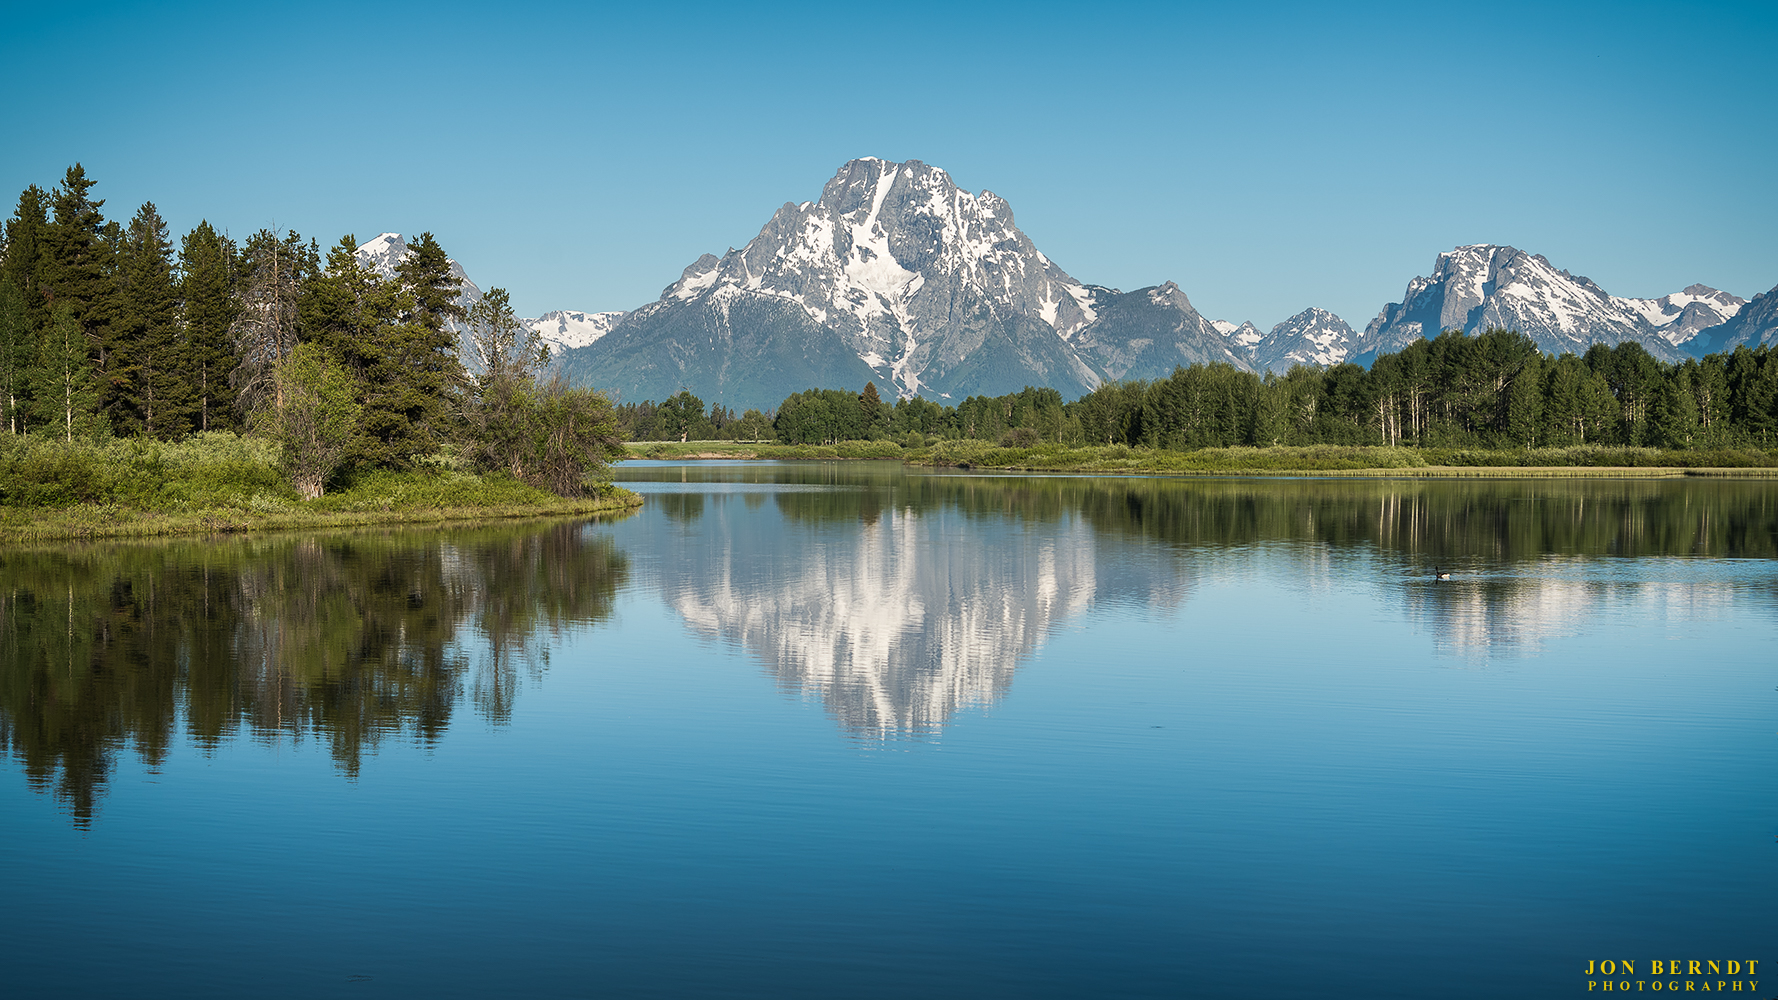 The view of Mount Moran reflecting in the Snake River at Oxbow Bend.   Click here  for information on ordering a print of this photograph.